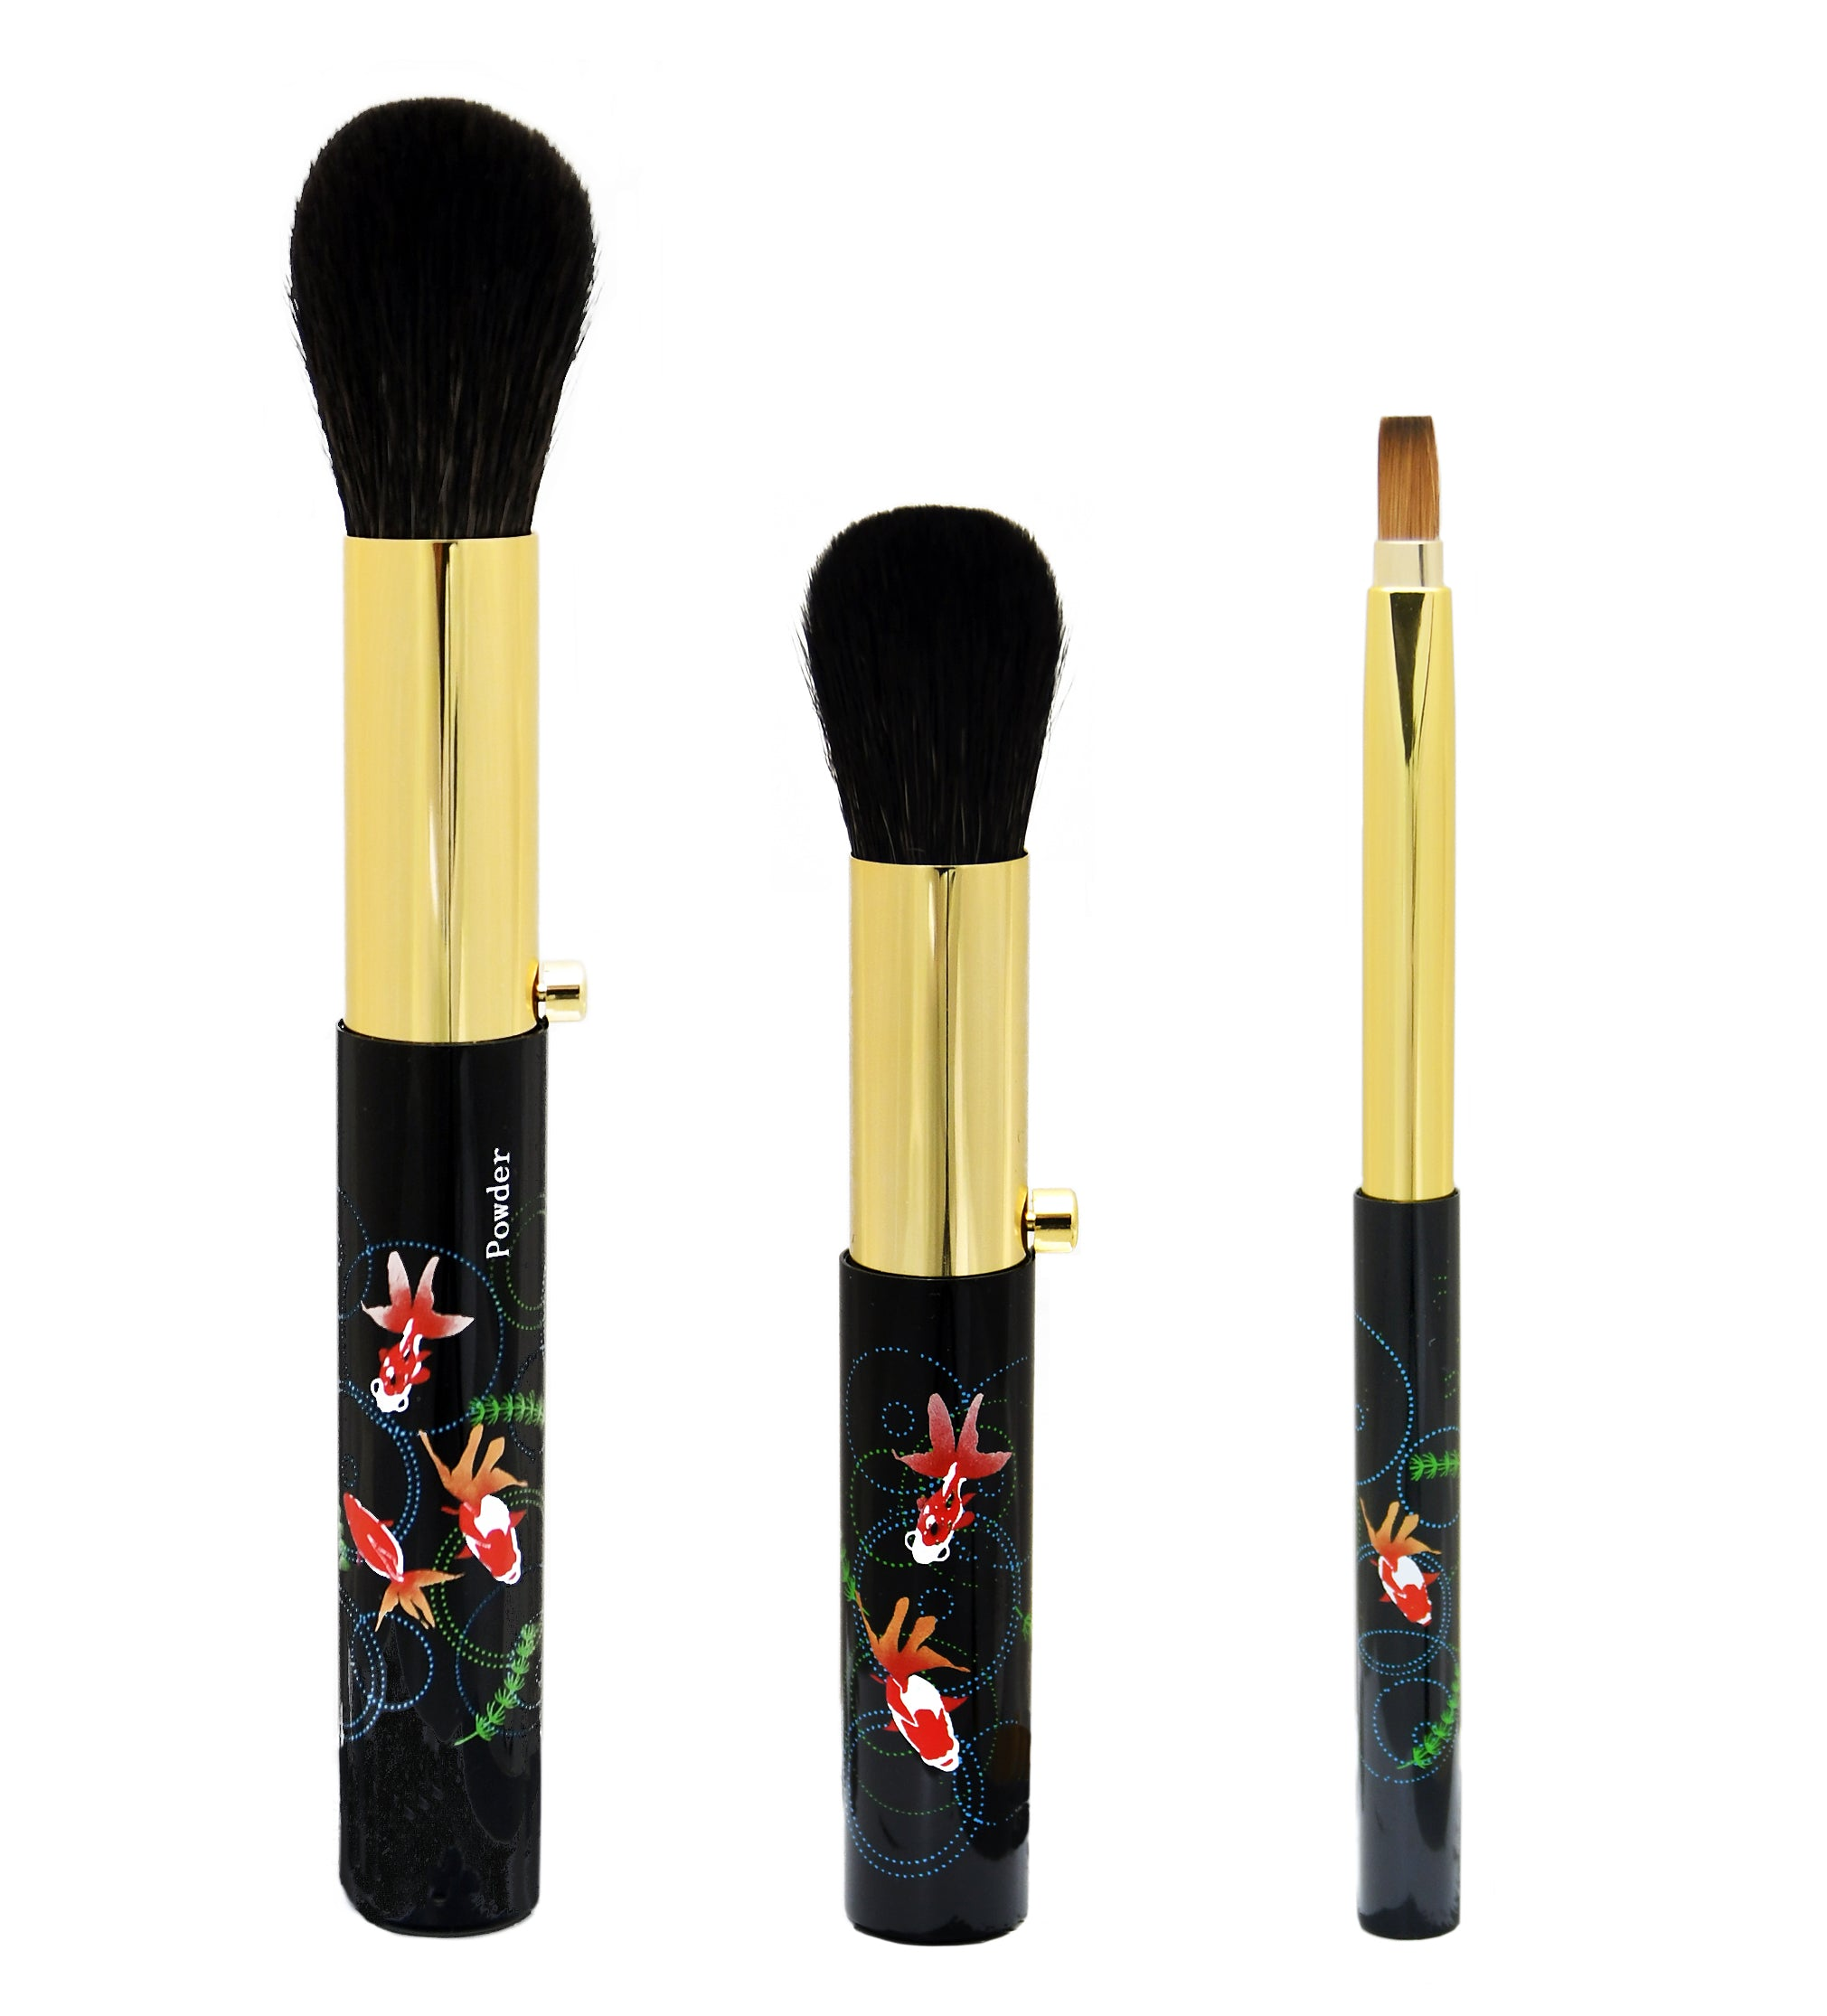 Kumanofude Portable High-quality Makeup Brush Set with Makie